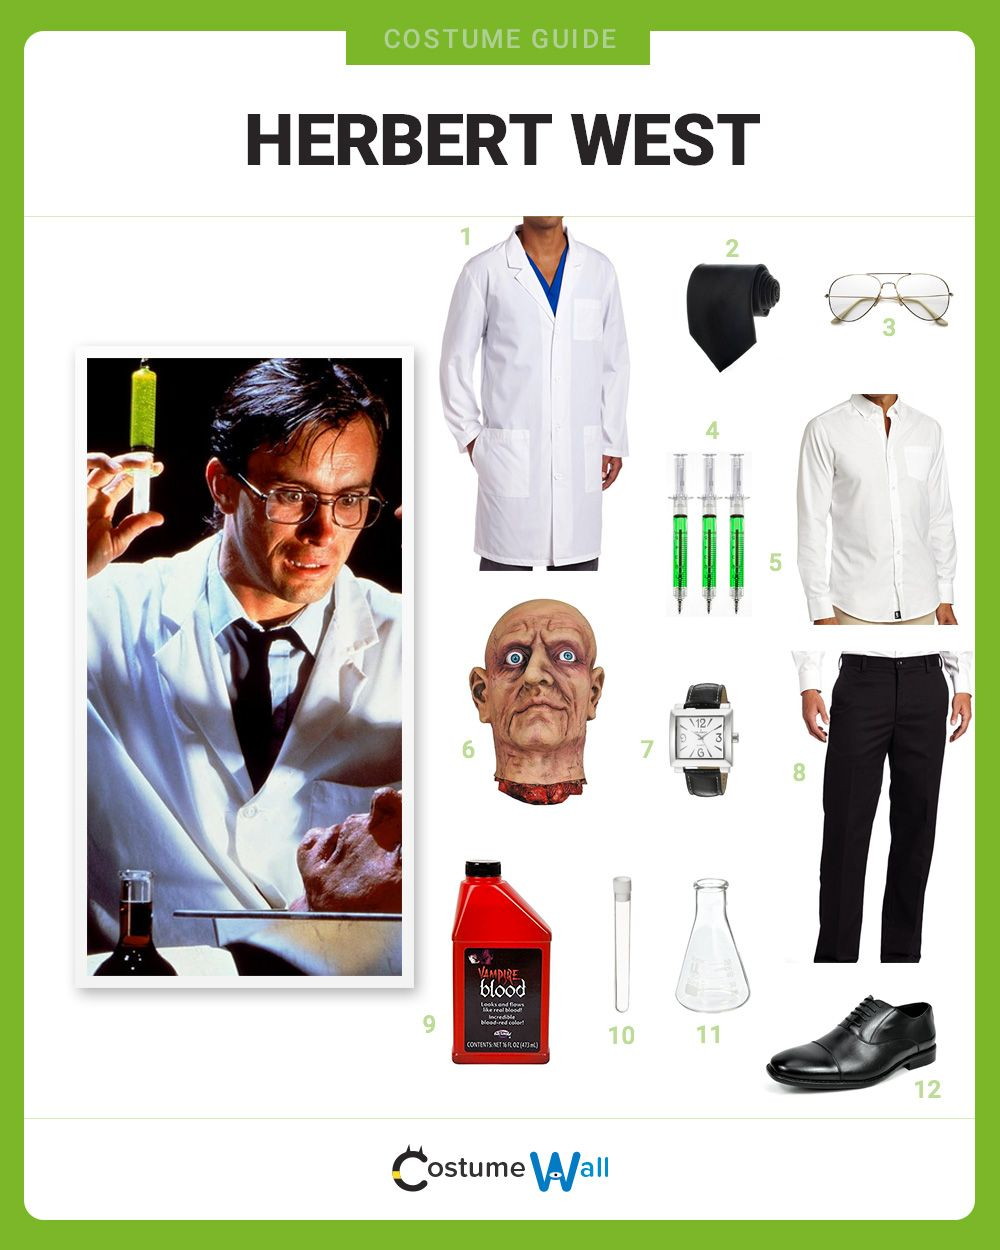 The best costume guide for dressing up like Herbert West, the scientist that brings dead people back to life in the 1985 movie Re-Animator.